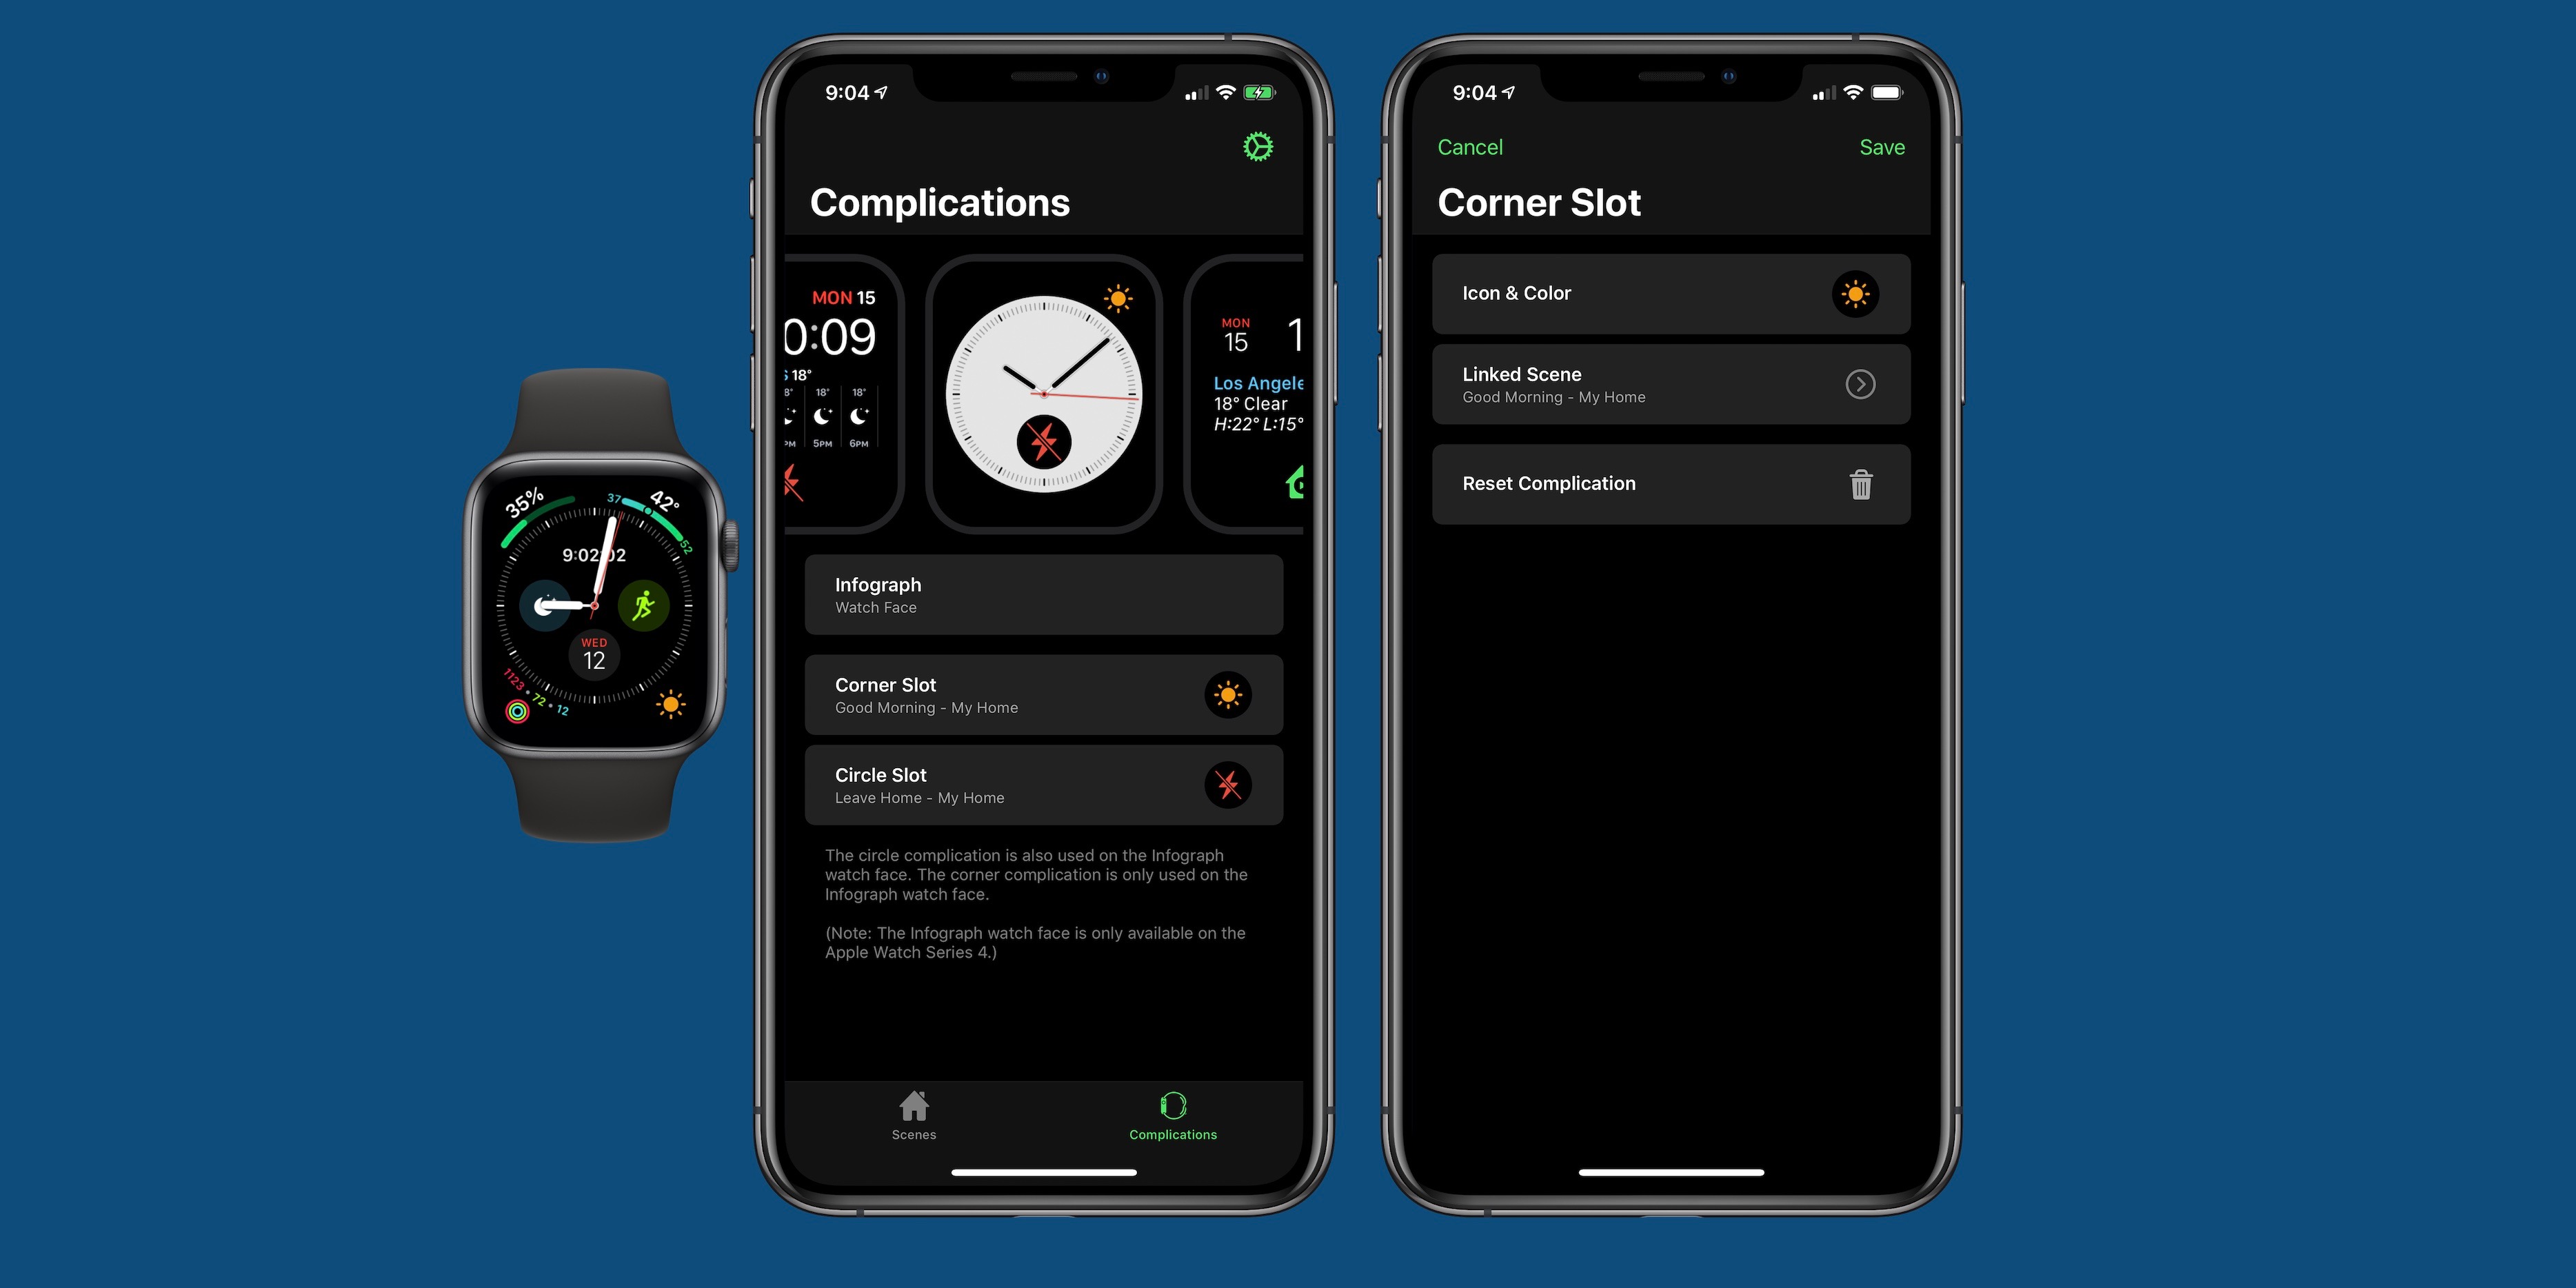 HomeRun for Apple Watch HomeKit control adds support for creating custom complications